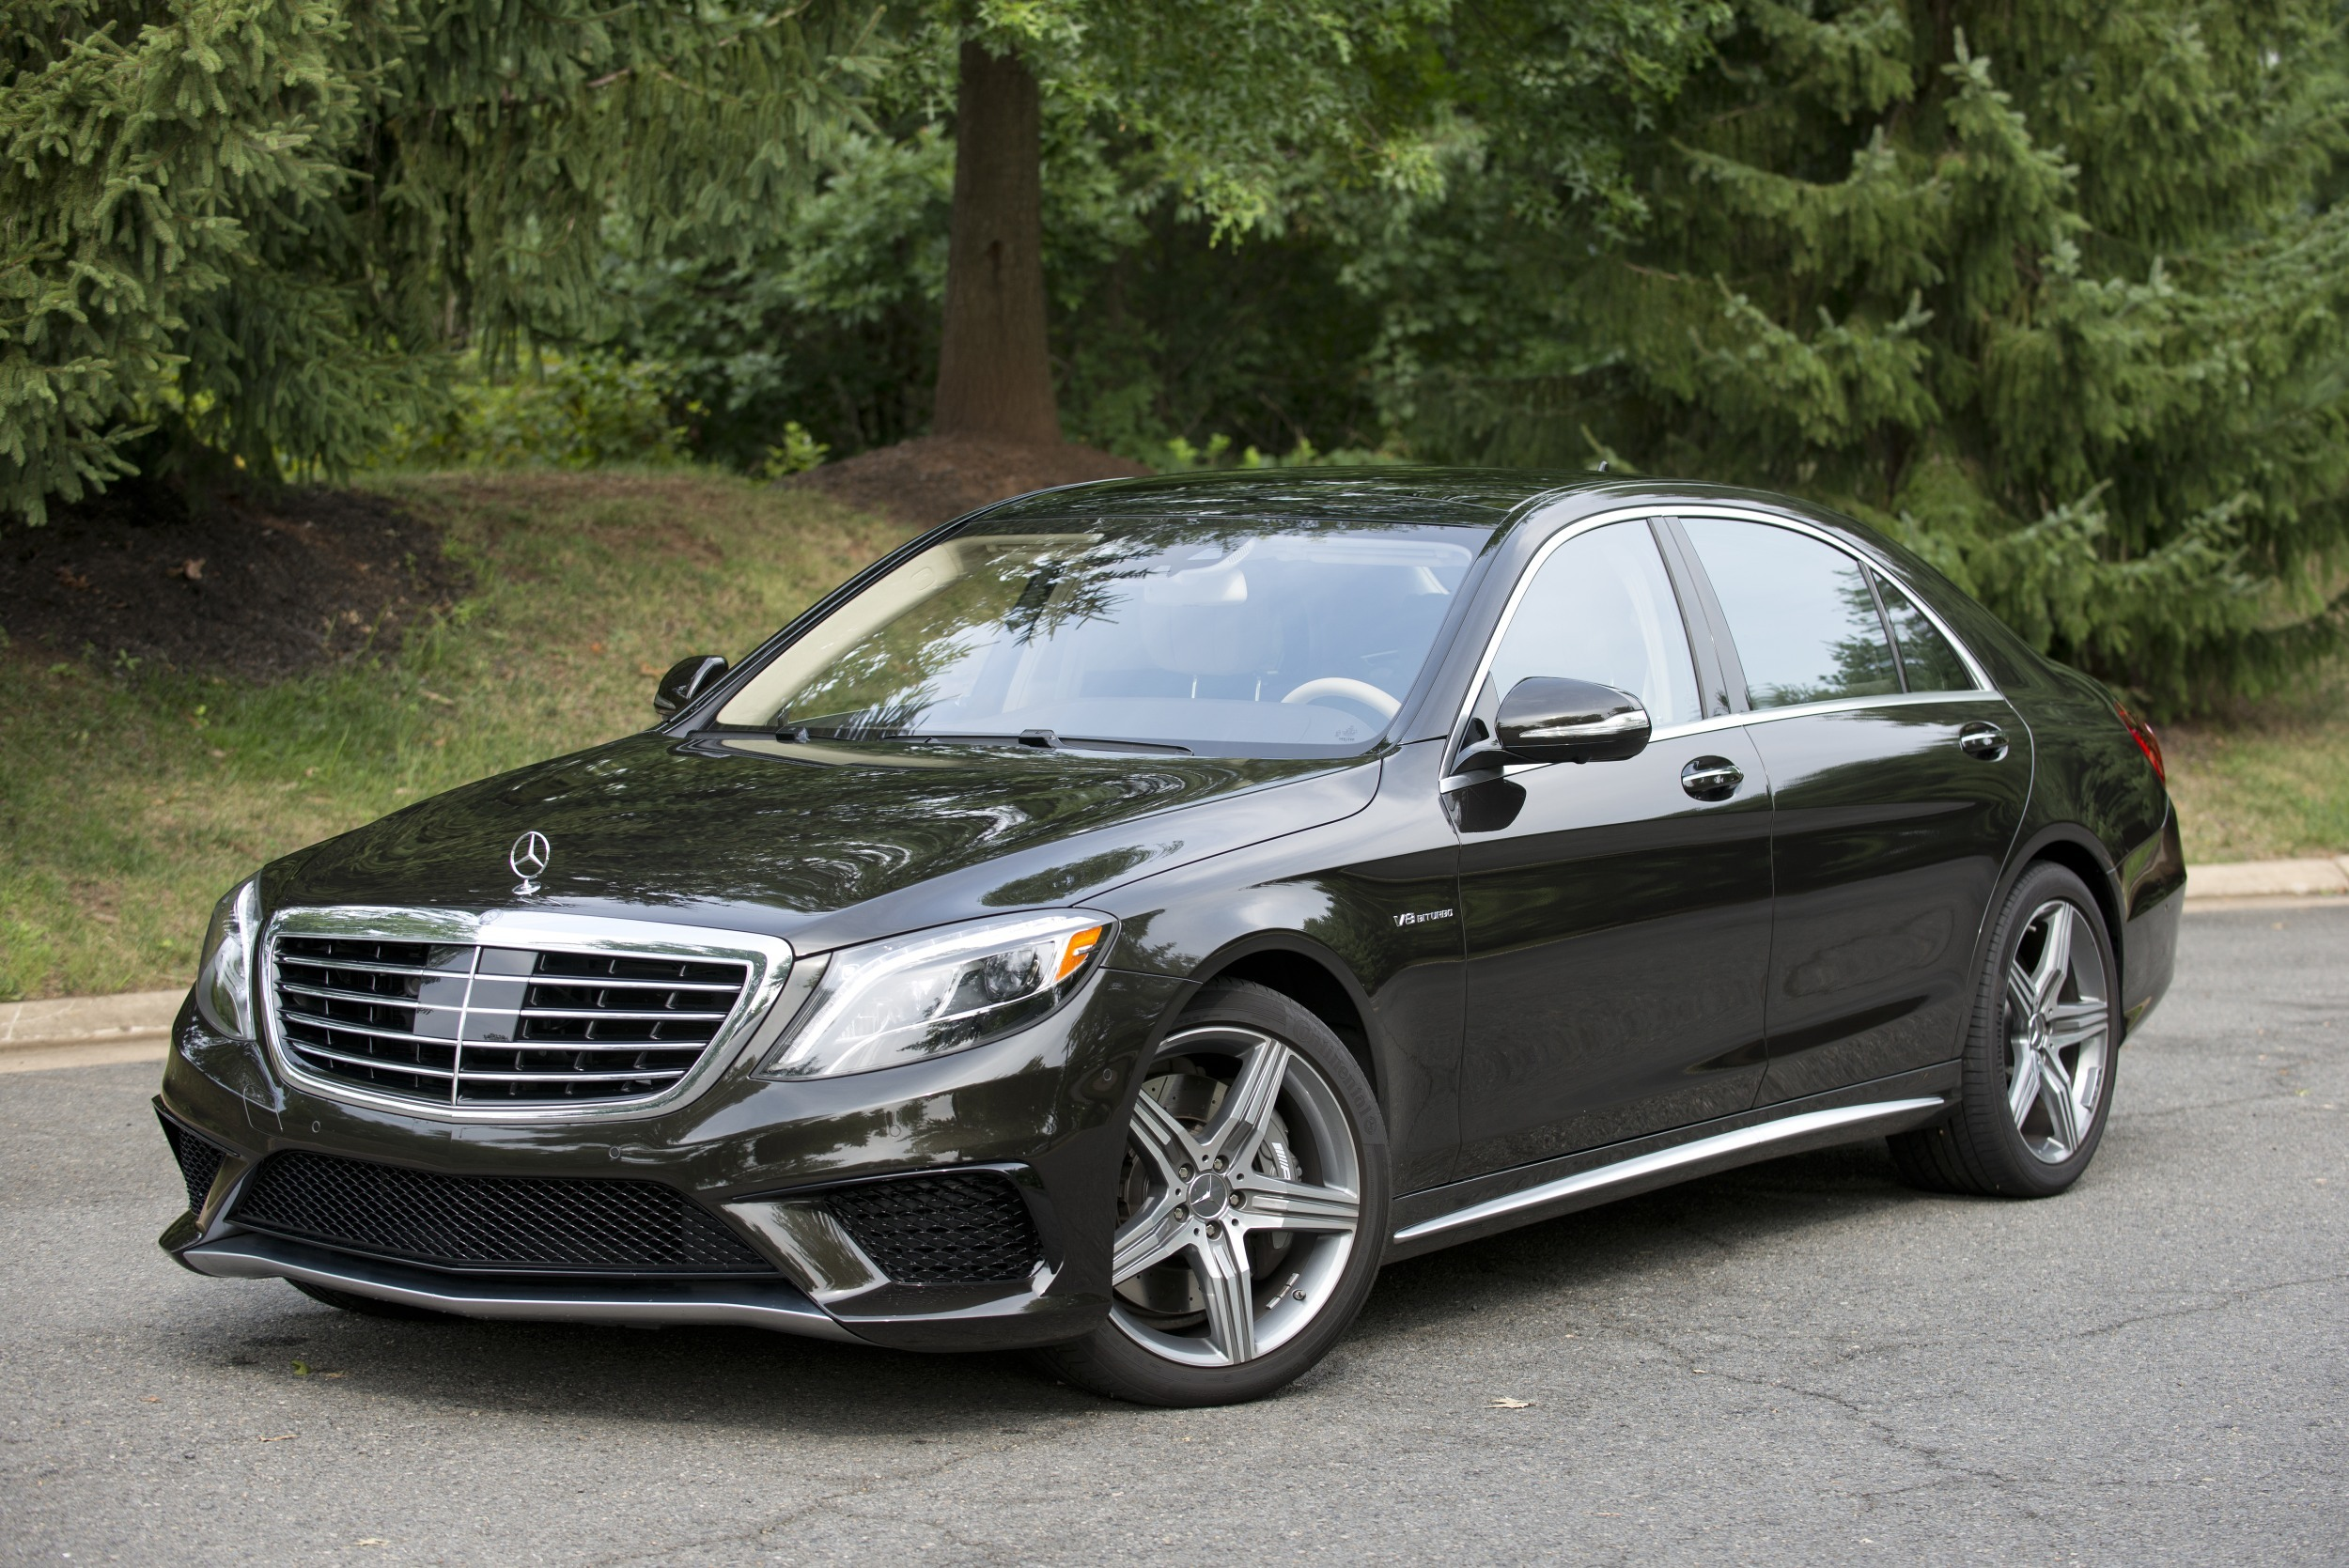 2014 mercedes benz s63 amg 4matic sedan quick spin photo for Mercedes benz s63 2014